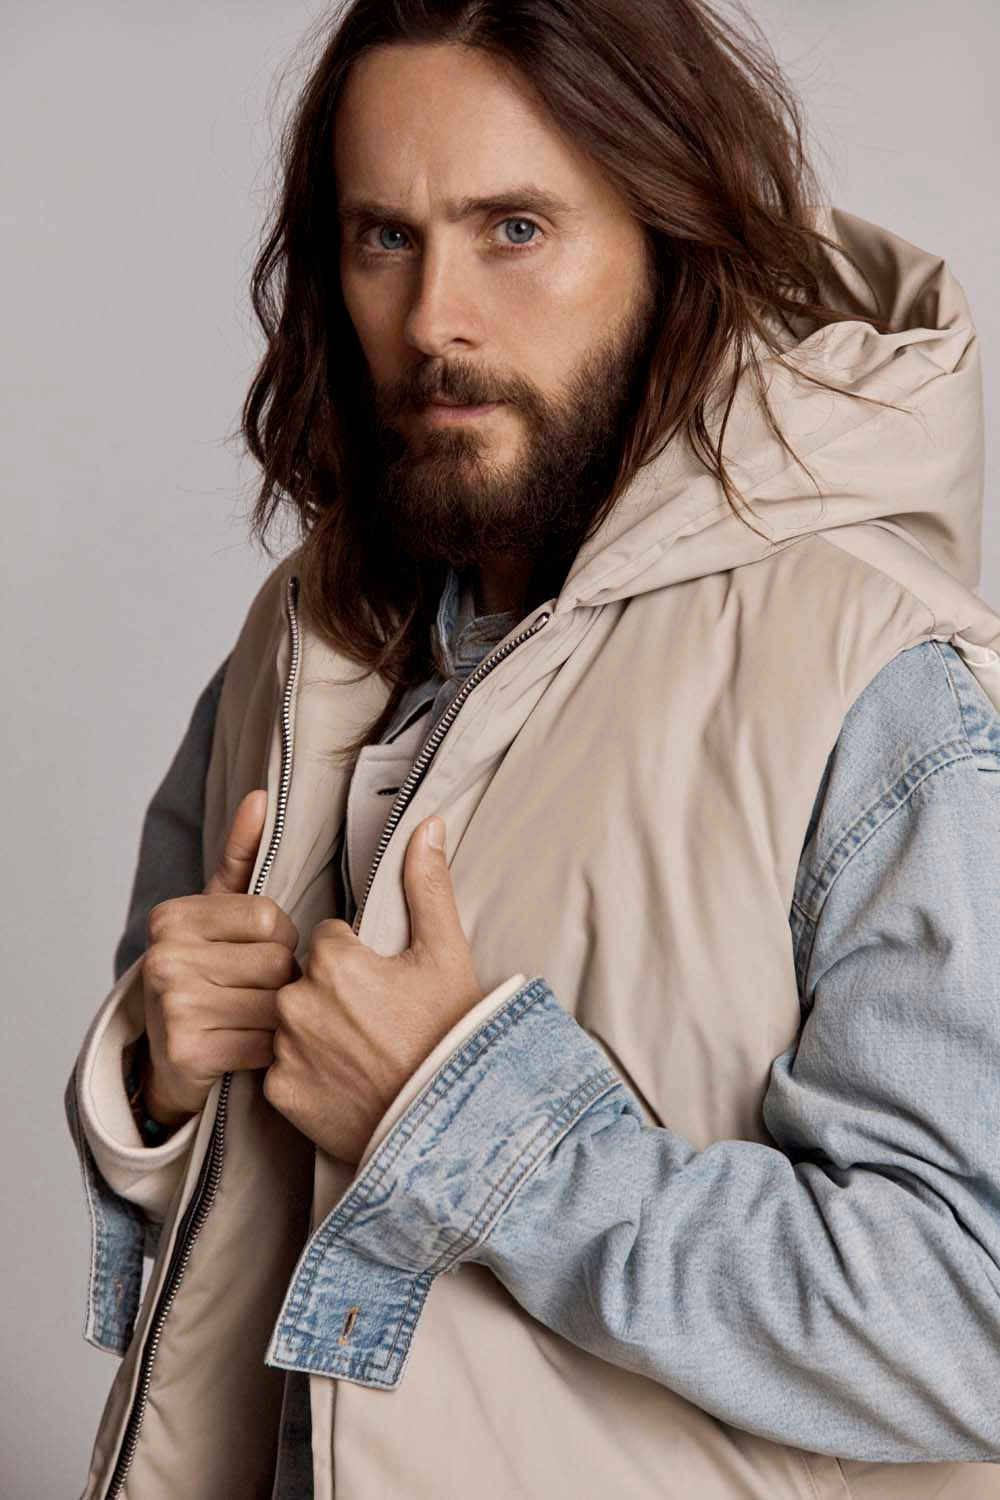 https_%2F%2Fhypebeast.com%2Fimage%2F2018%2F09%2Ffear-of-god-6-sixth-collection-jared-leto-nike-08.jpg